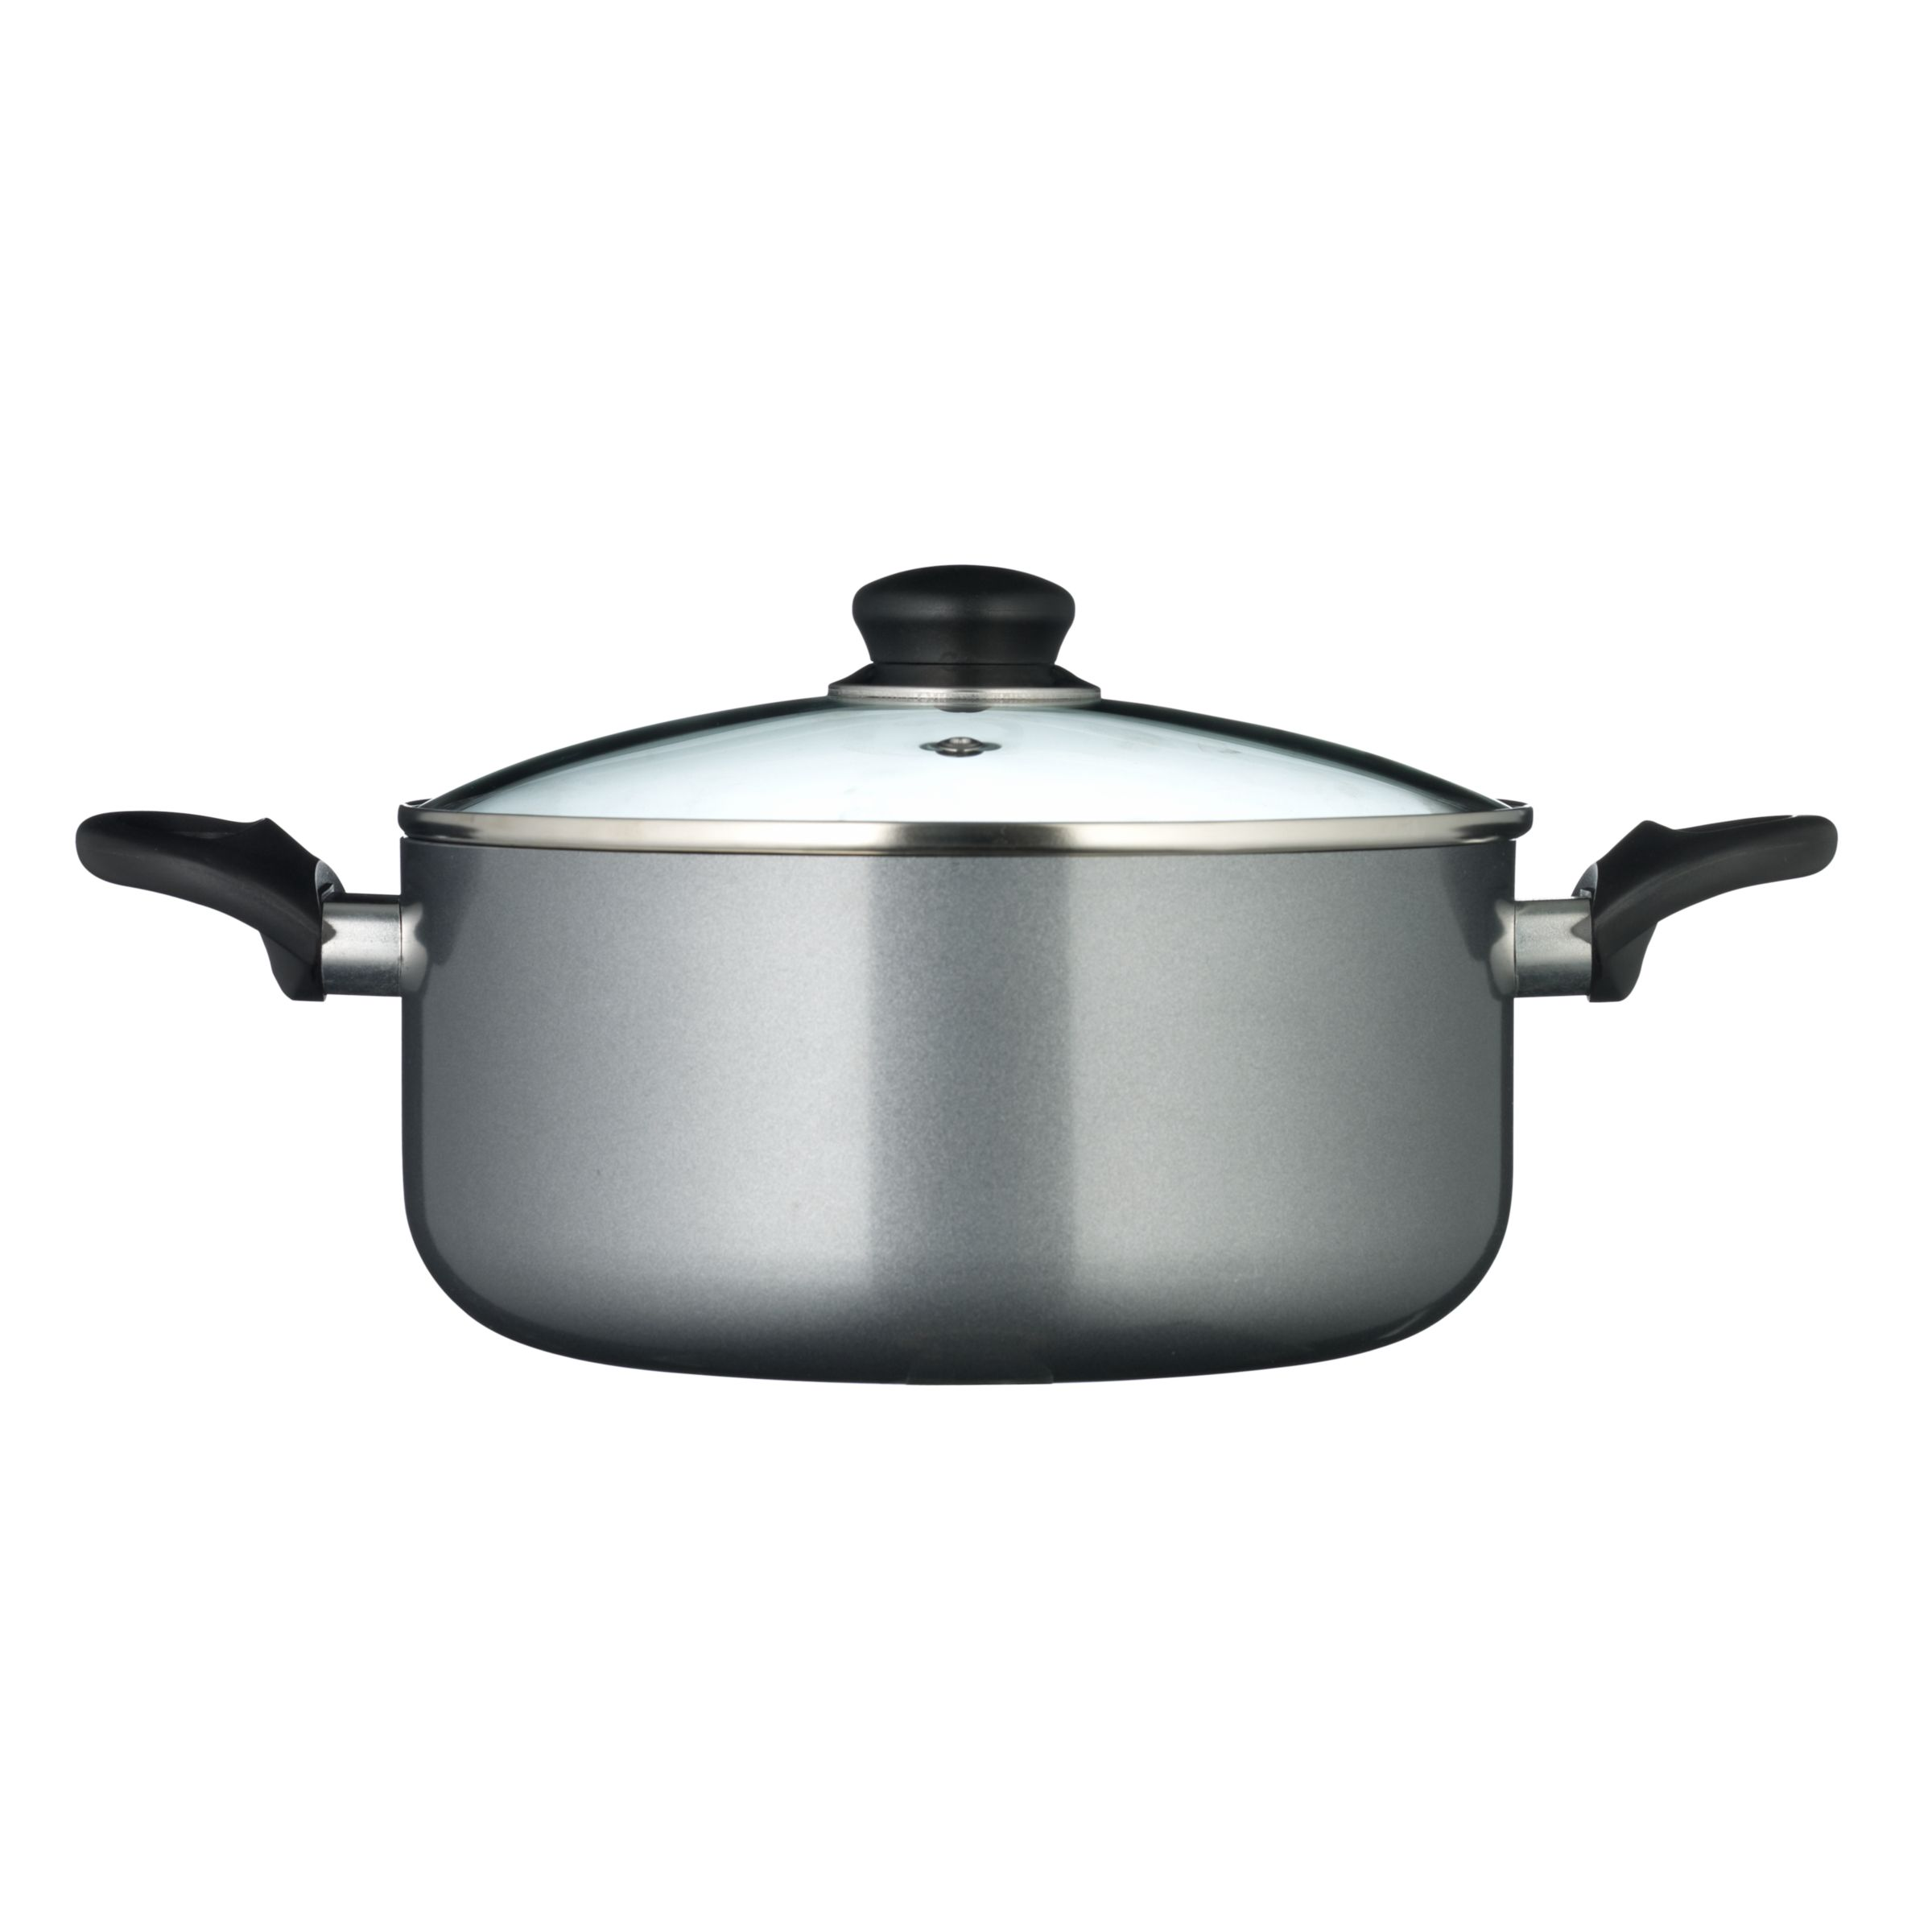 Sigle Casserole Induction Induction Hob